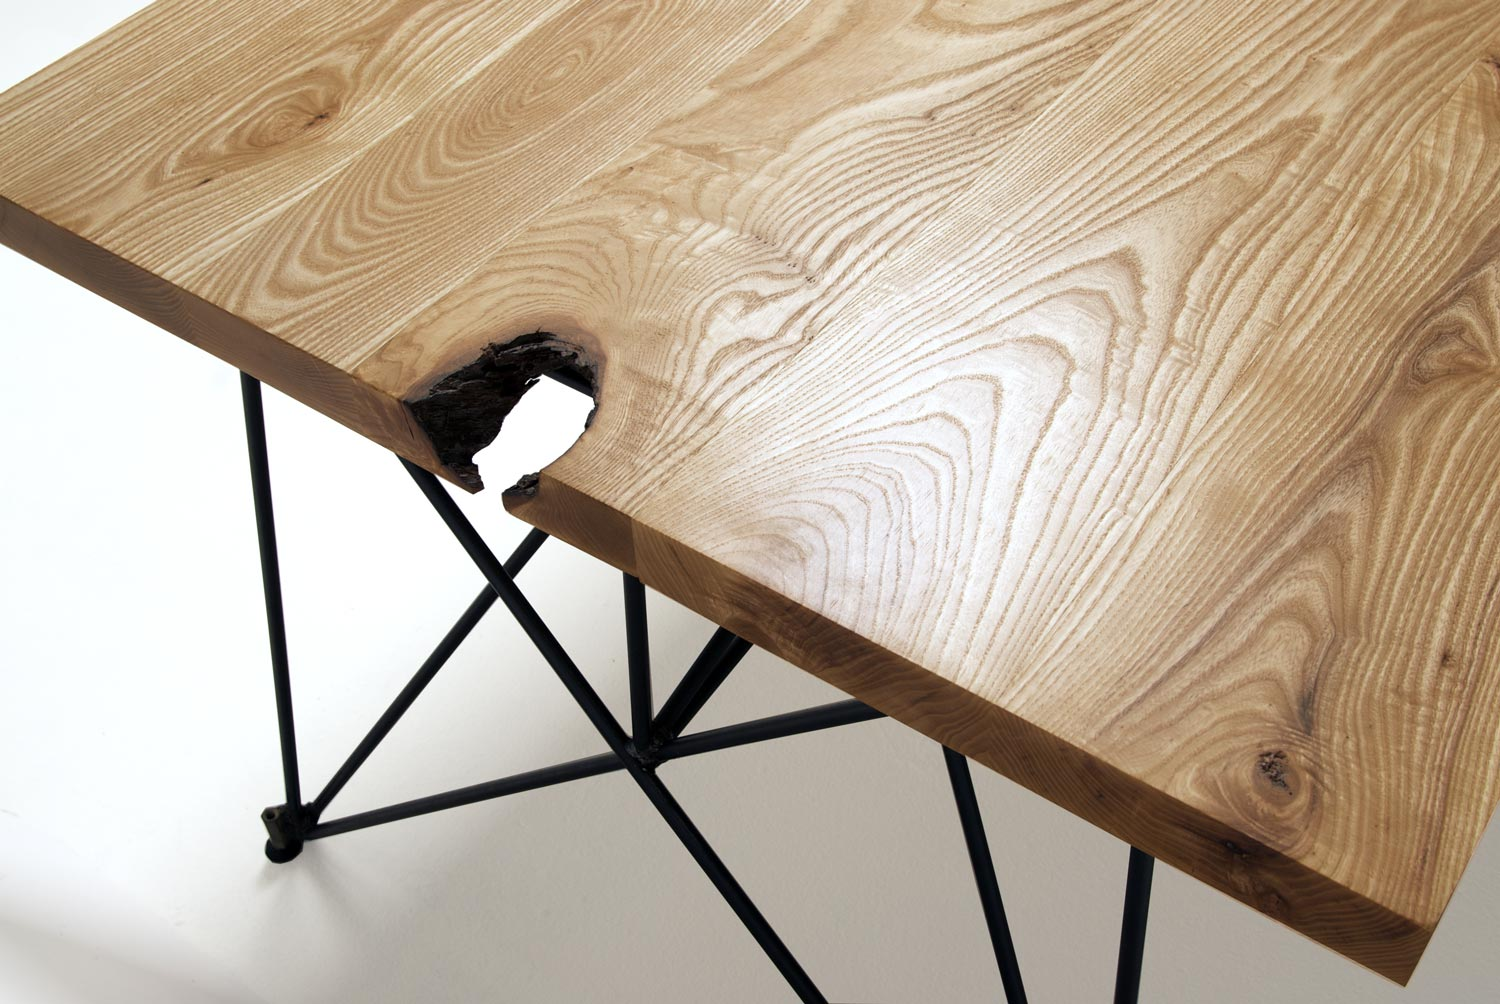 Detail of a modern wood dining table with a steel rod base, made in the USA